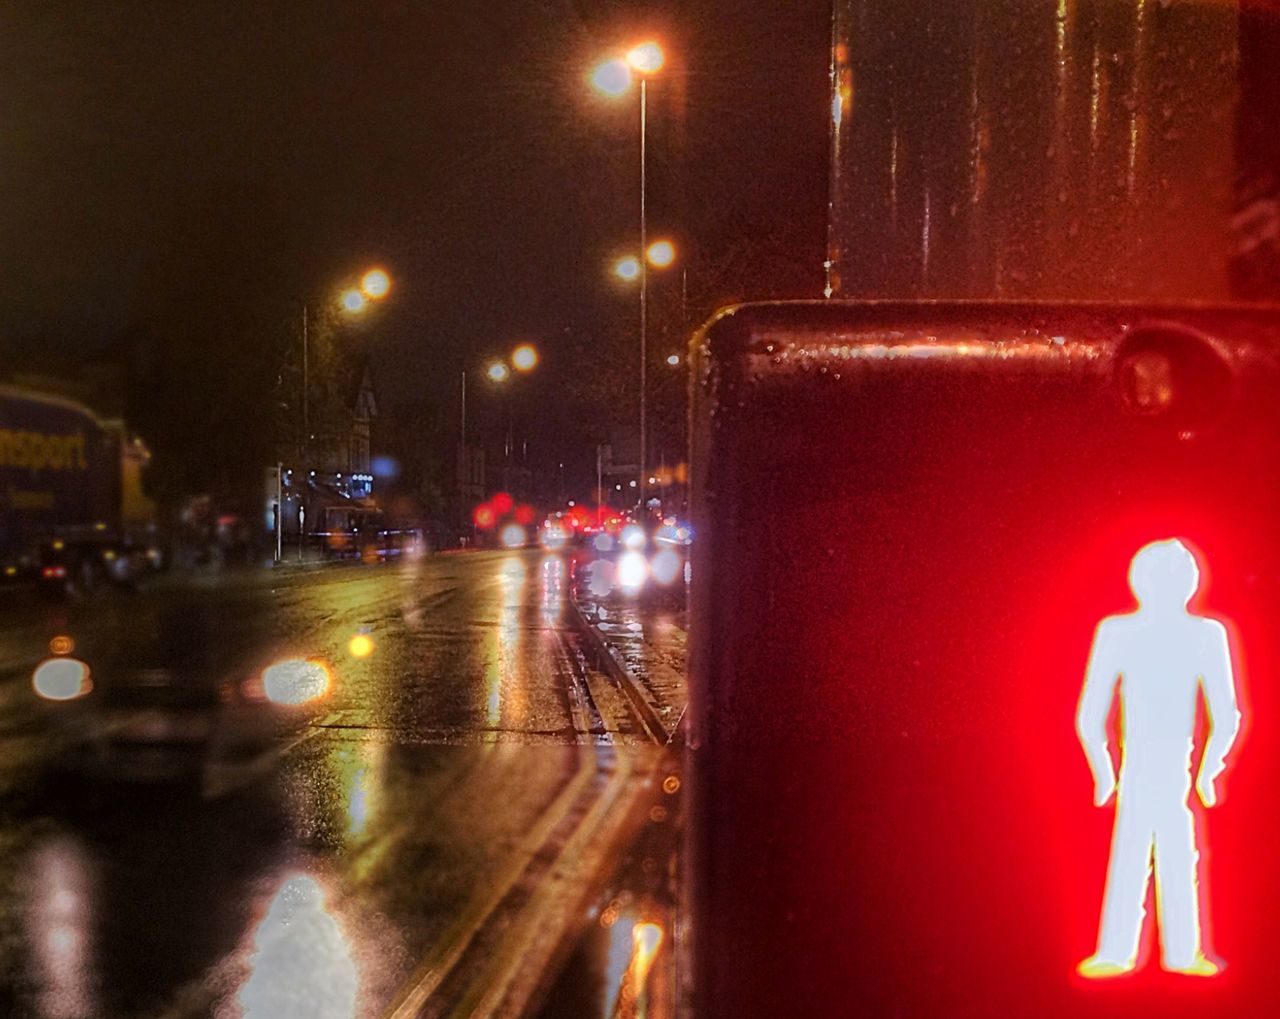 Don't cross in front of the ghost car! Car Night Lights Street Lights Wet Rain Weather Dark Pedestrian Crossing Wait Red Man Don't Cross Headlights Reflections